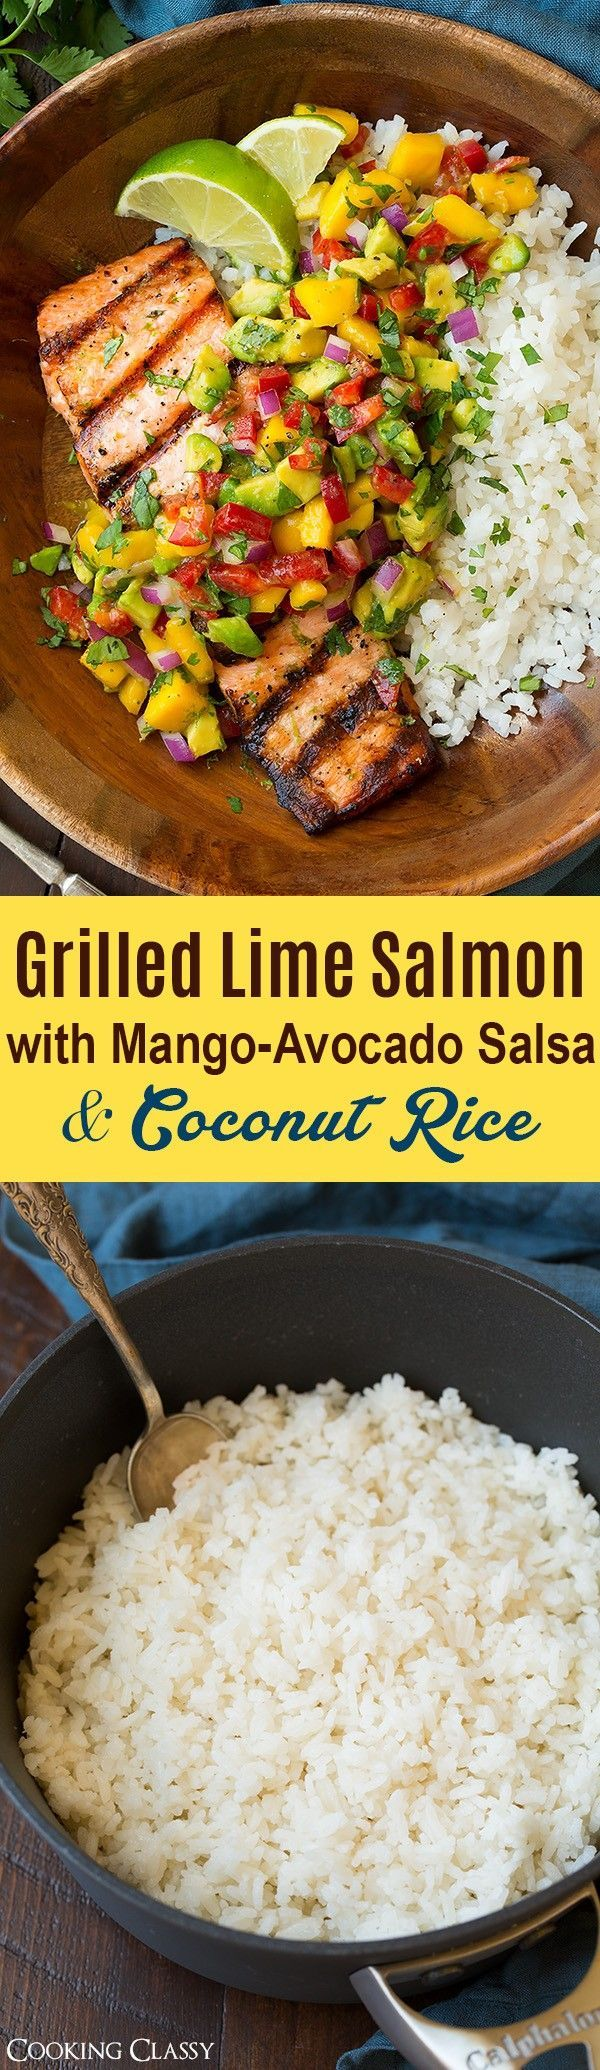 Get the recipe ♥ Grilled Lime Salmon with Mango-Avocado Salsa and Coconut Rice /recipes_to_go/